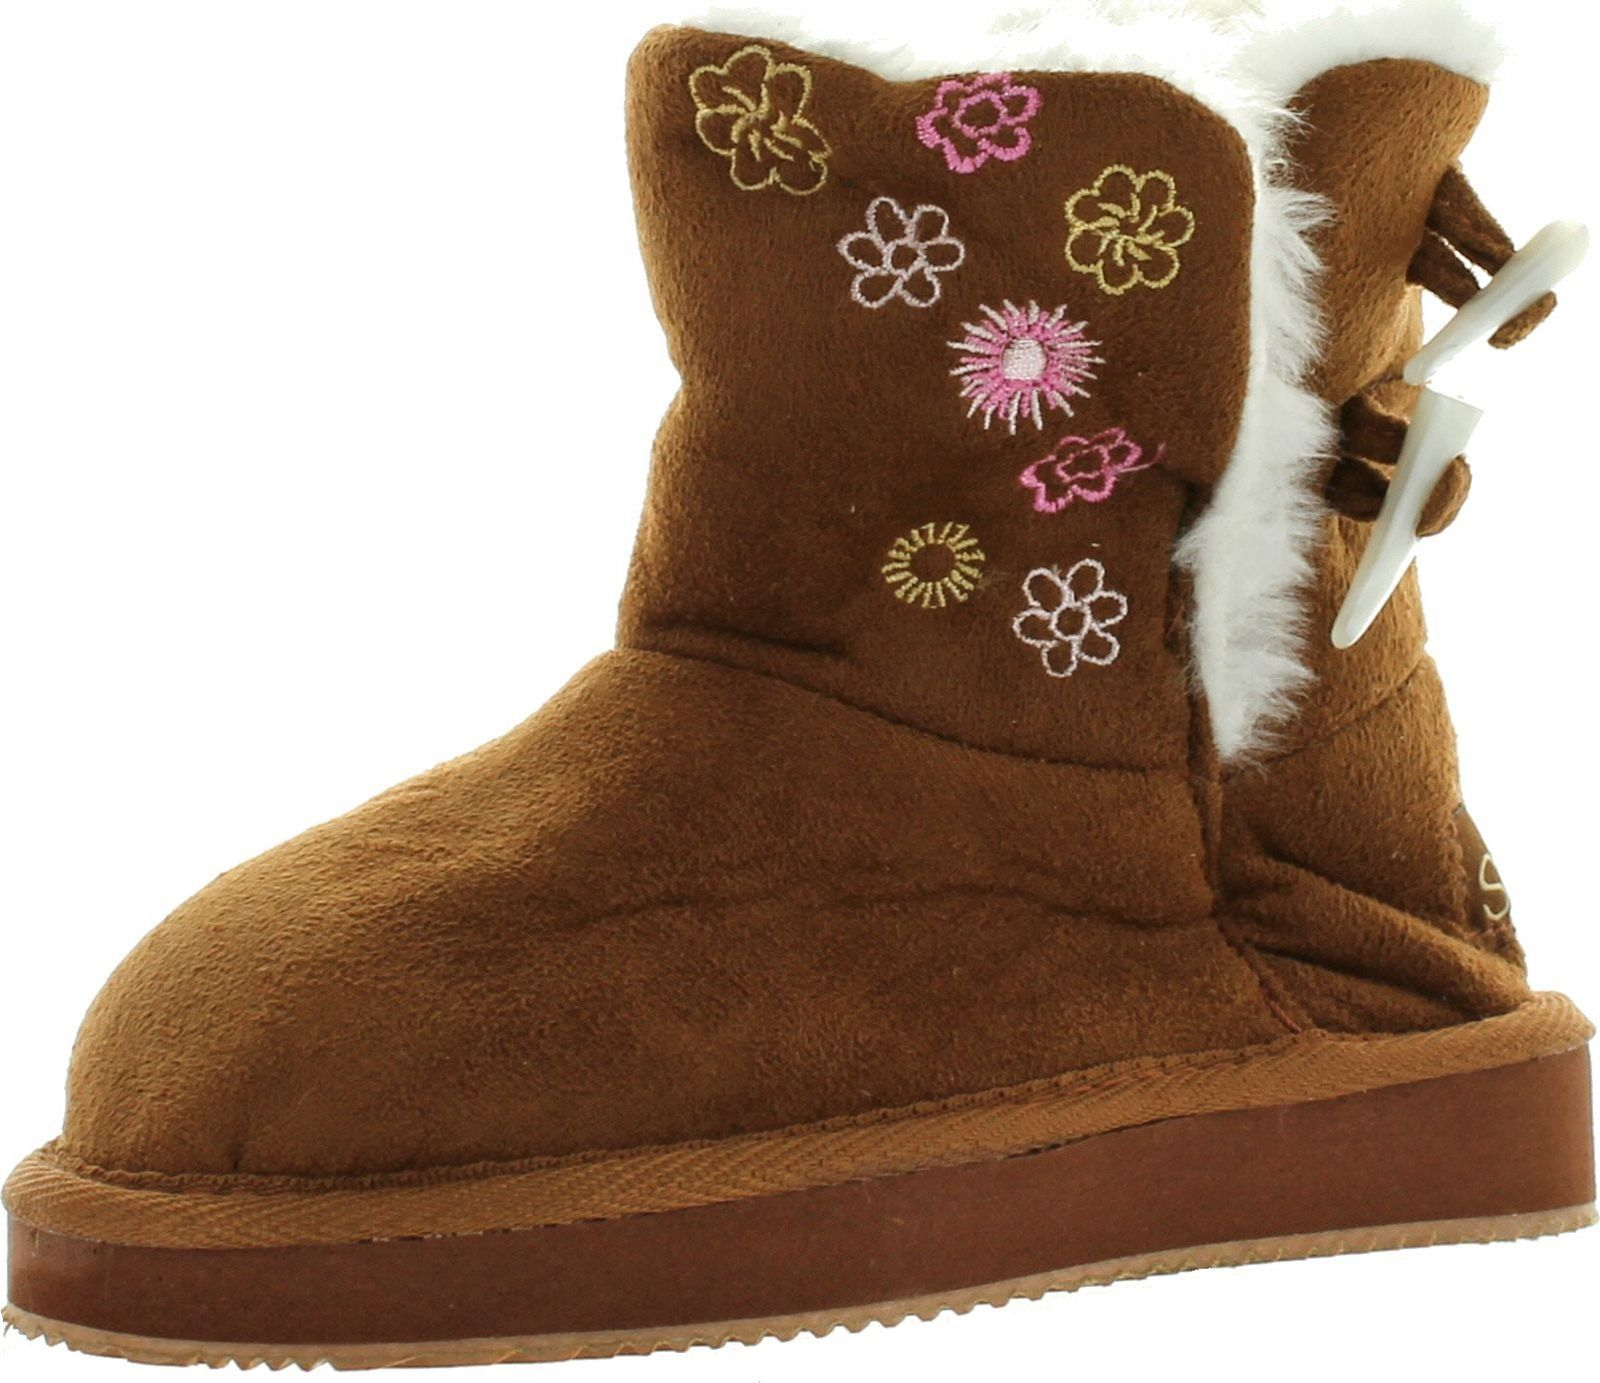 Camel Color Two Layer Faux Fur Booties Kids Girls Winter Boots Toddlers Size 7